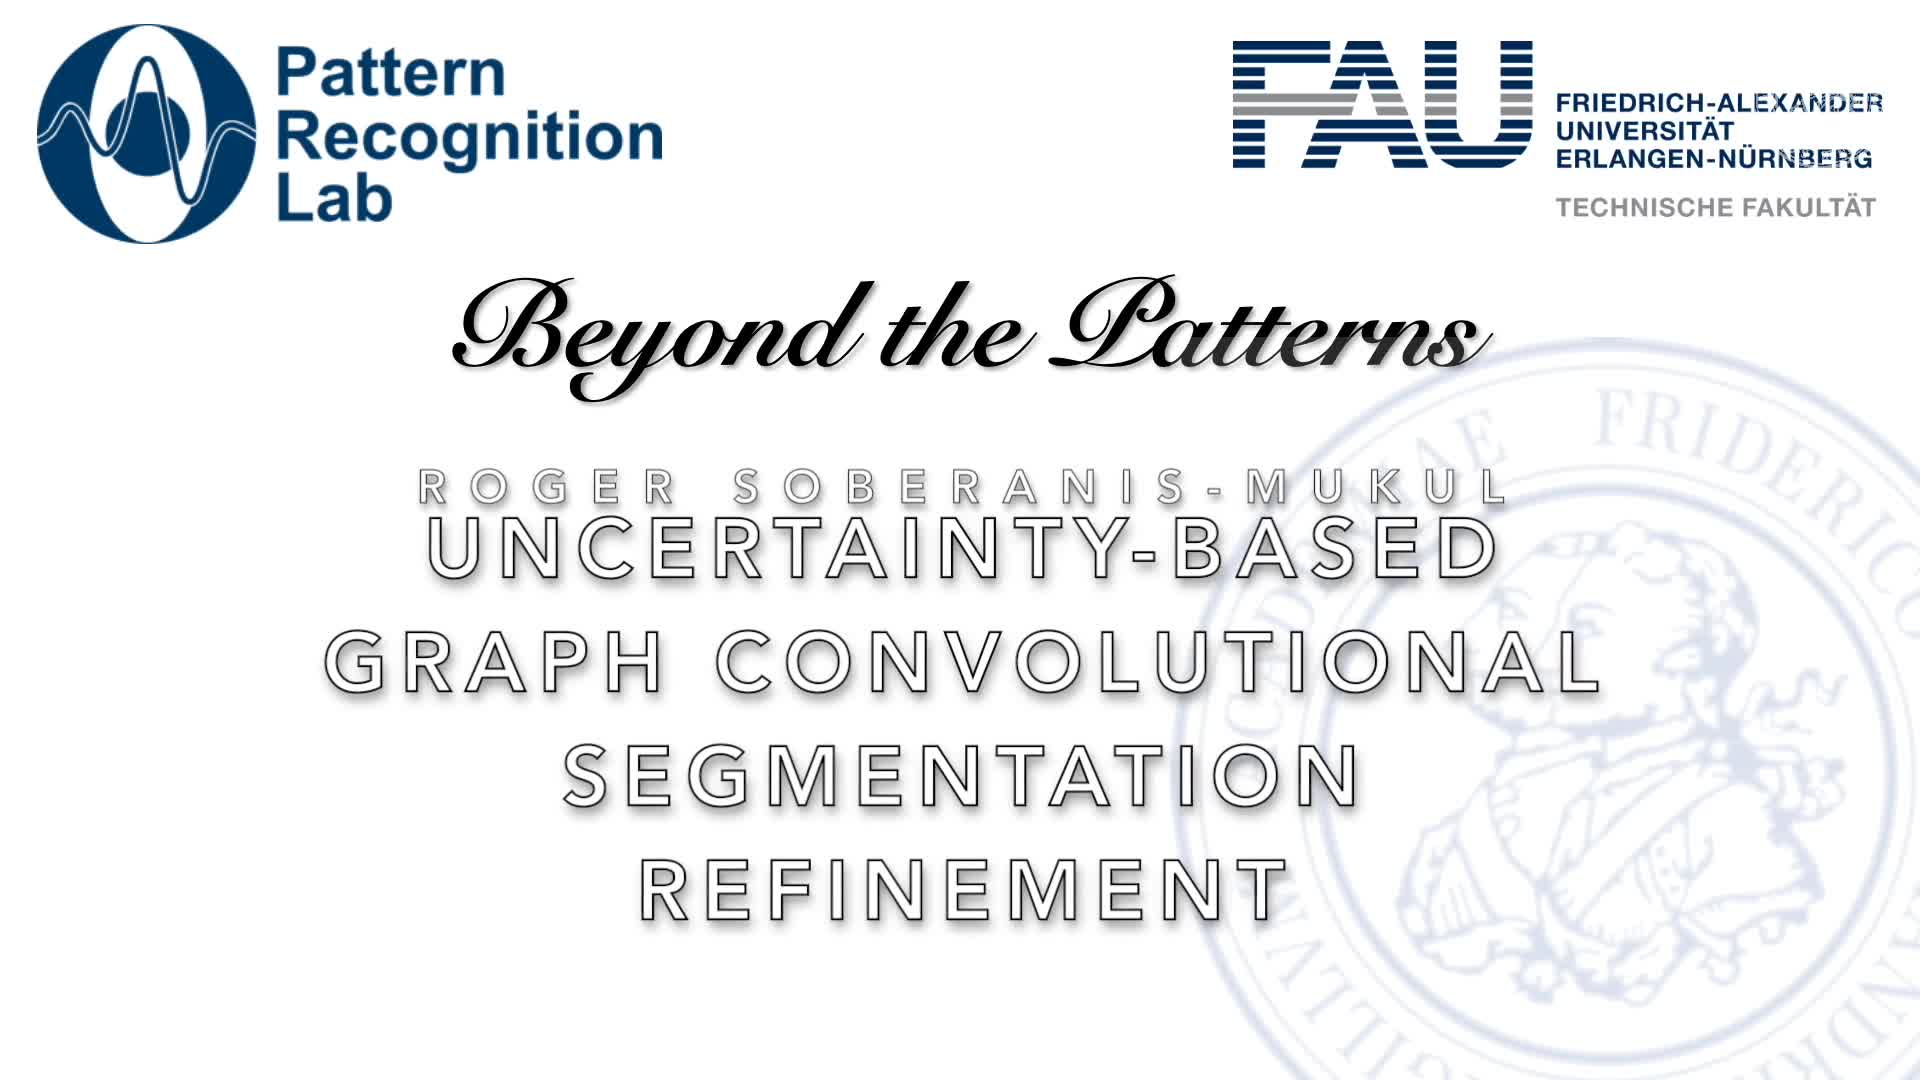 Beyond the Patterns - Roger David Soberanis Mukul (TUM): An Uncertainty-based Graph Convolutional Network for Organ Segmentation Refinement preview image